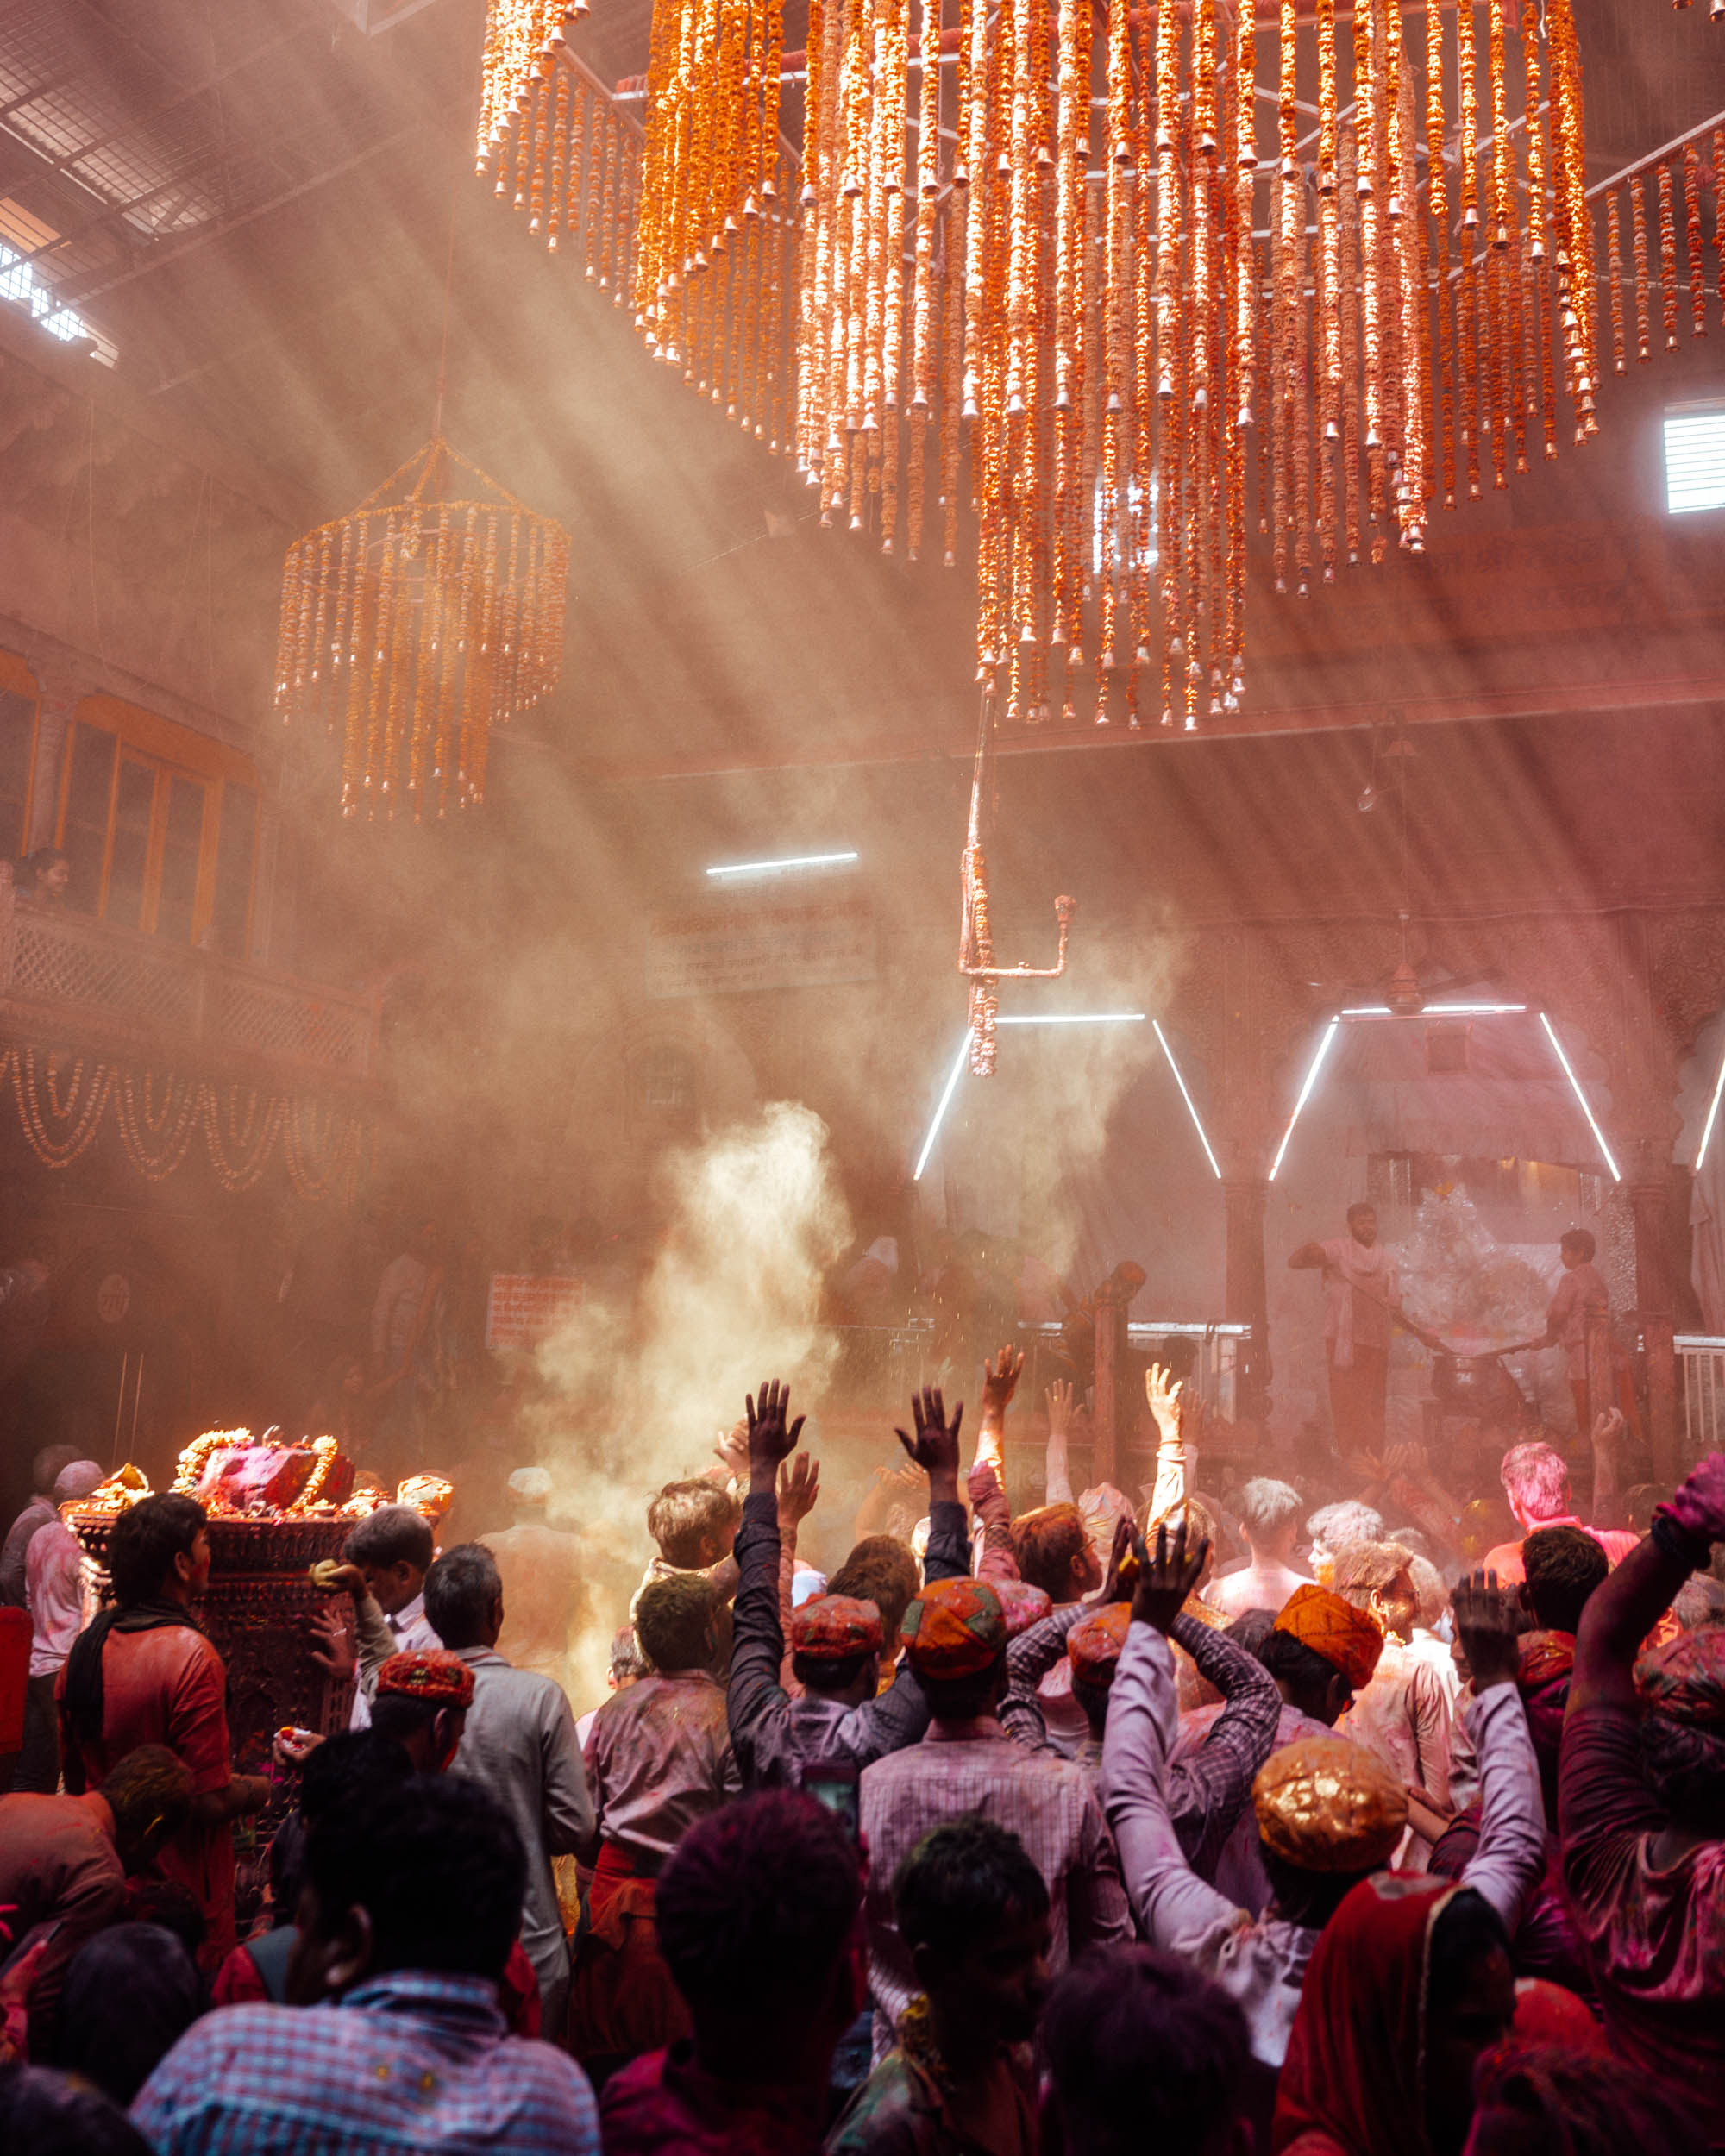 People celebrating Holi Festival with colorful powder in Vrindavan and Mathura, India via @finduslost